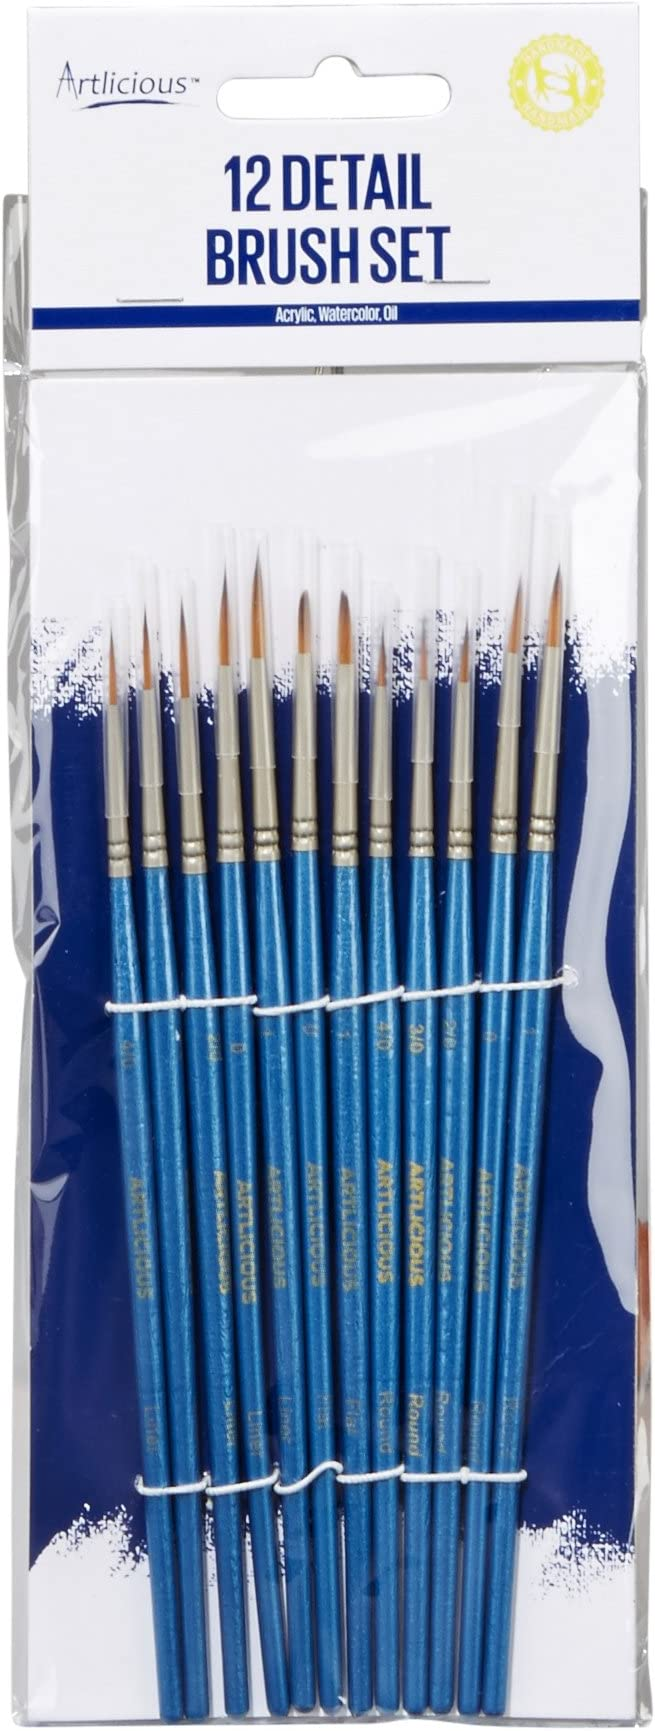 Artlicious Acrylic 12 Hand Made Miniature Brushes for Detail Painting Oil Watercolor